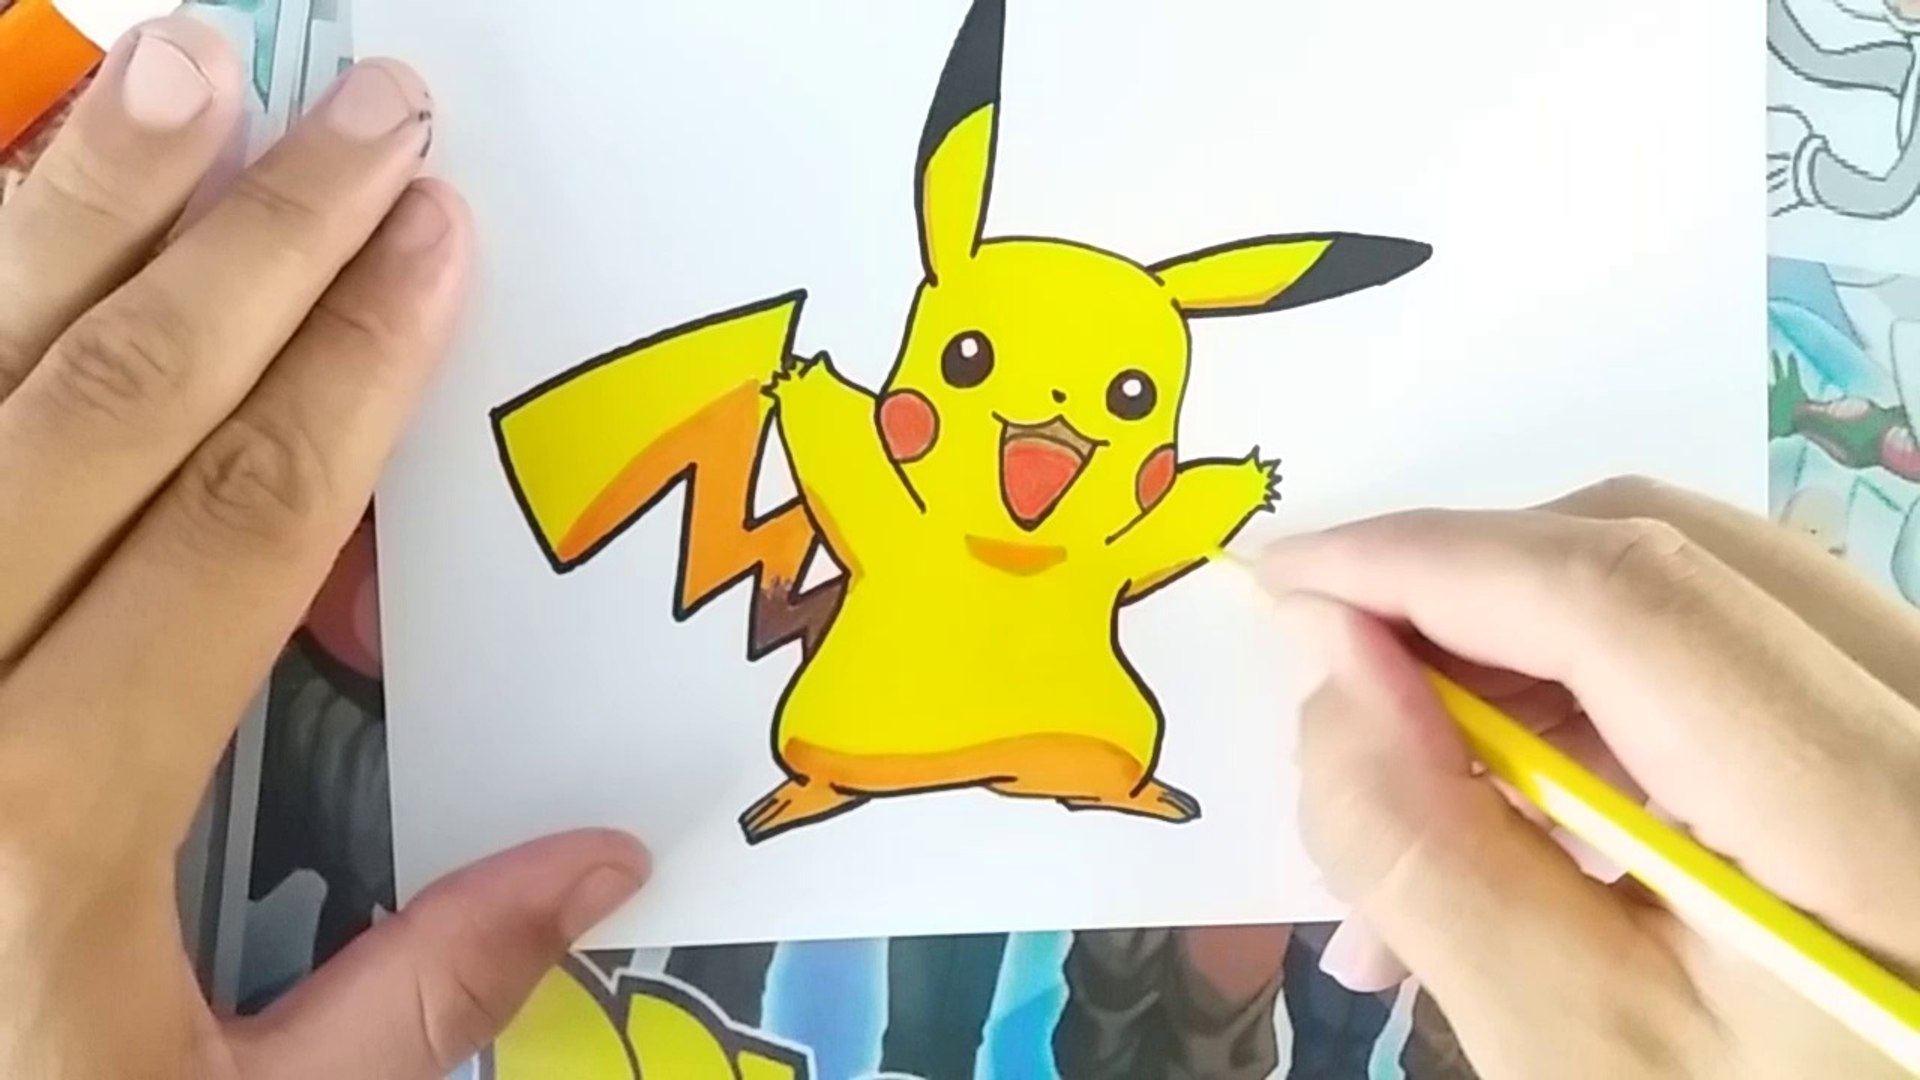 comment dessiner PIKACHU - pokémon | how to draw pikachu - pokémon | como dibujar pikachu - pokémon